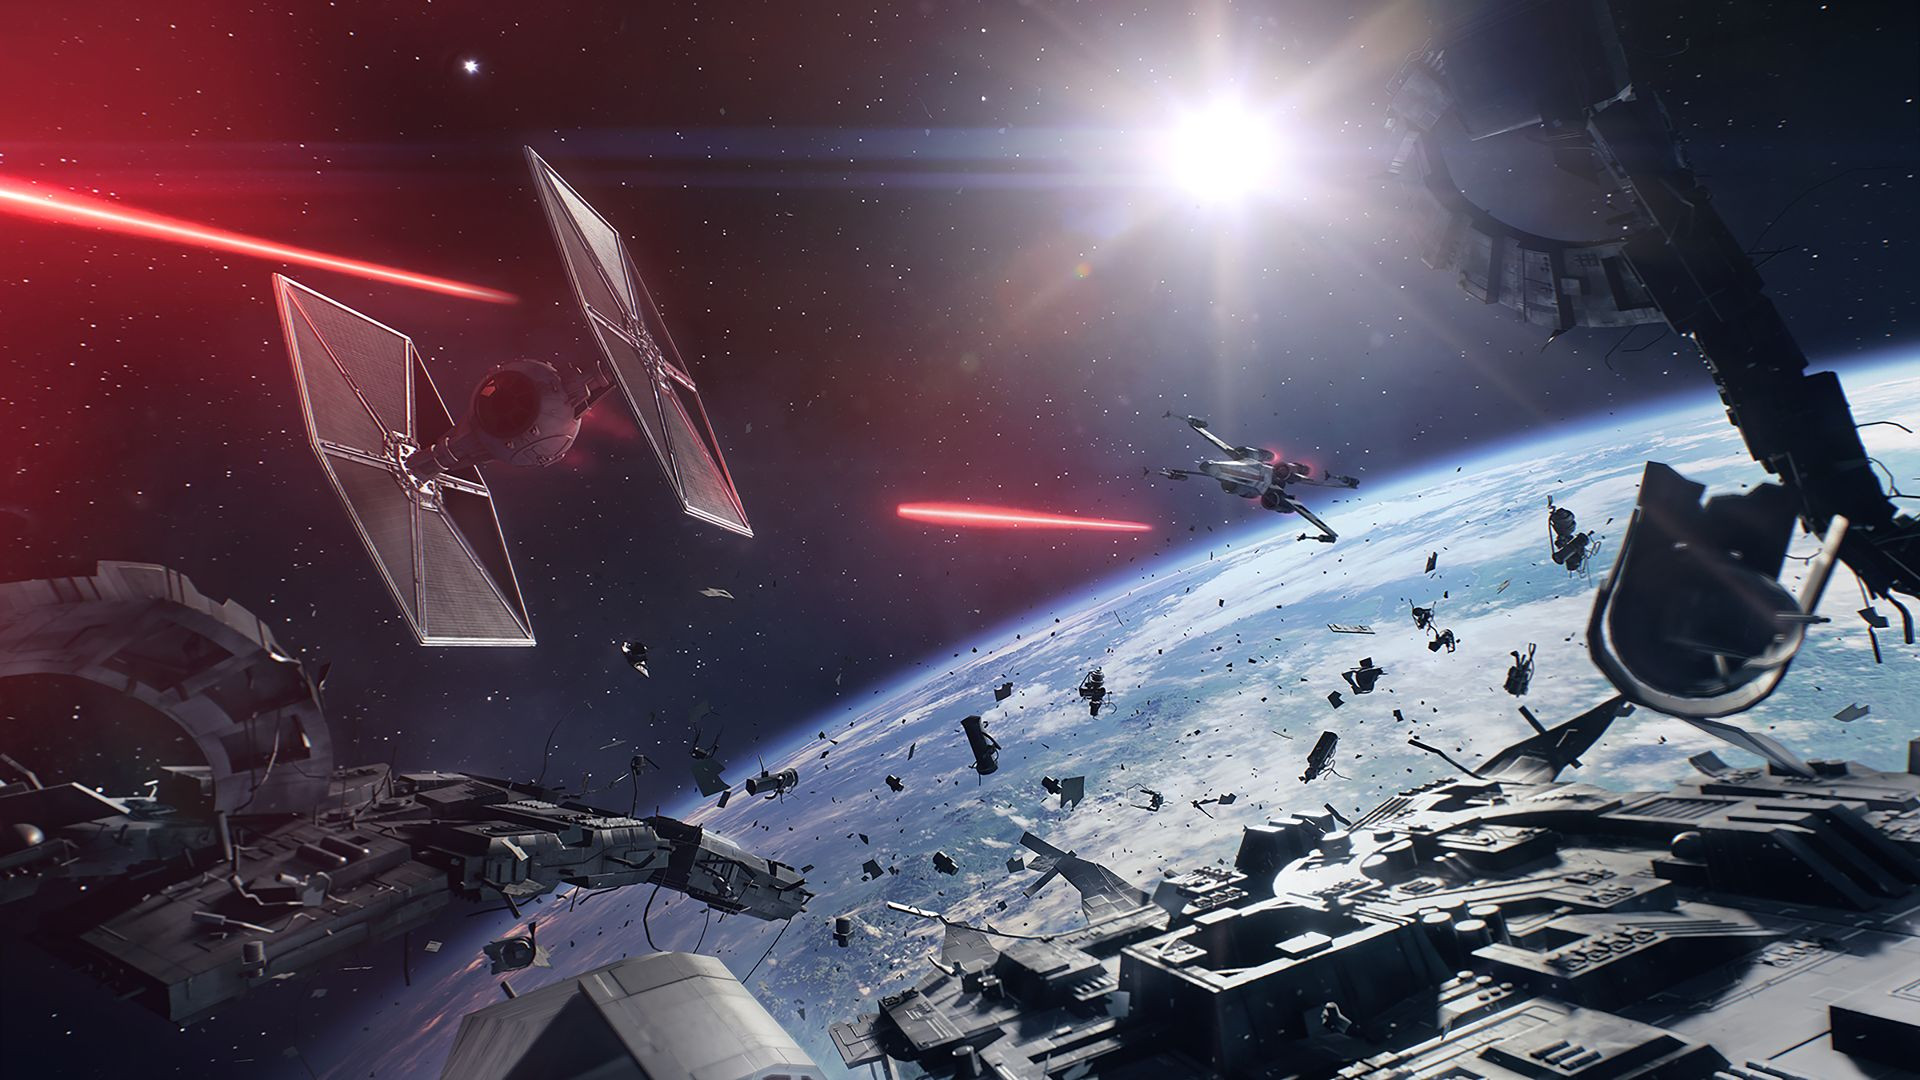 background - Open beta na Star Wars Battlefront II v októbri!